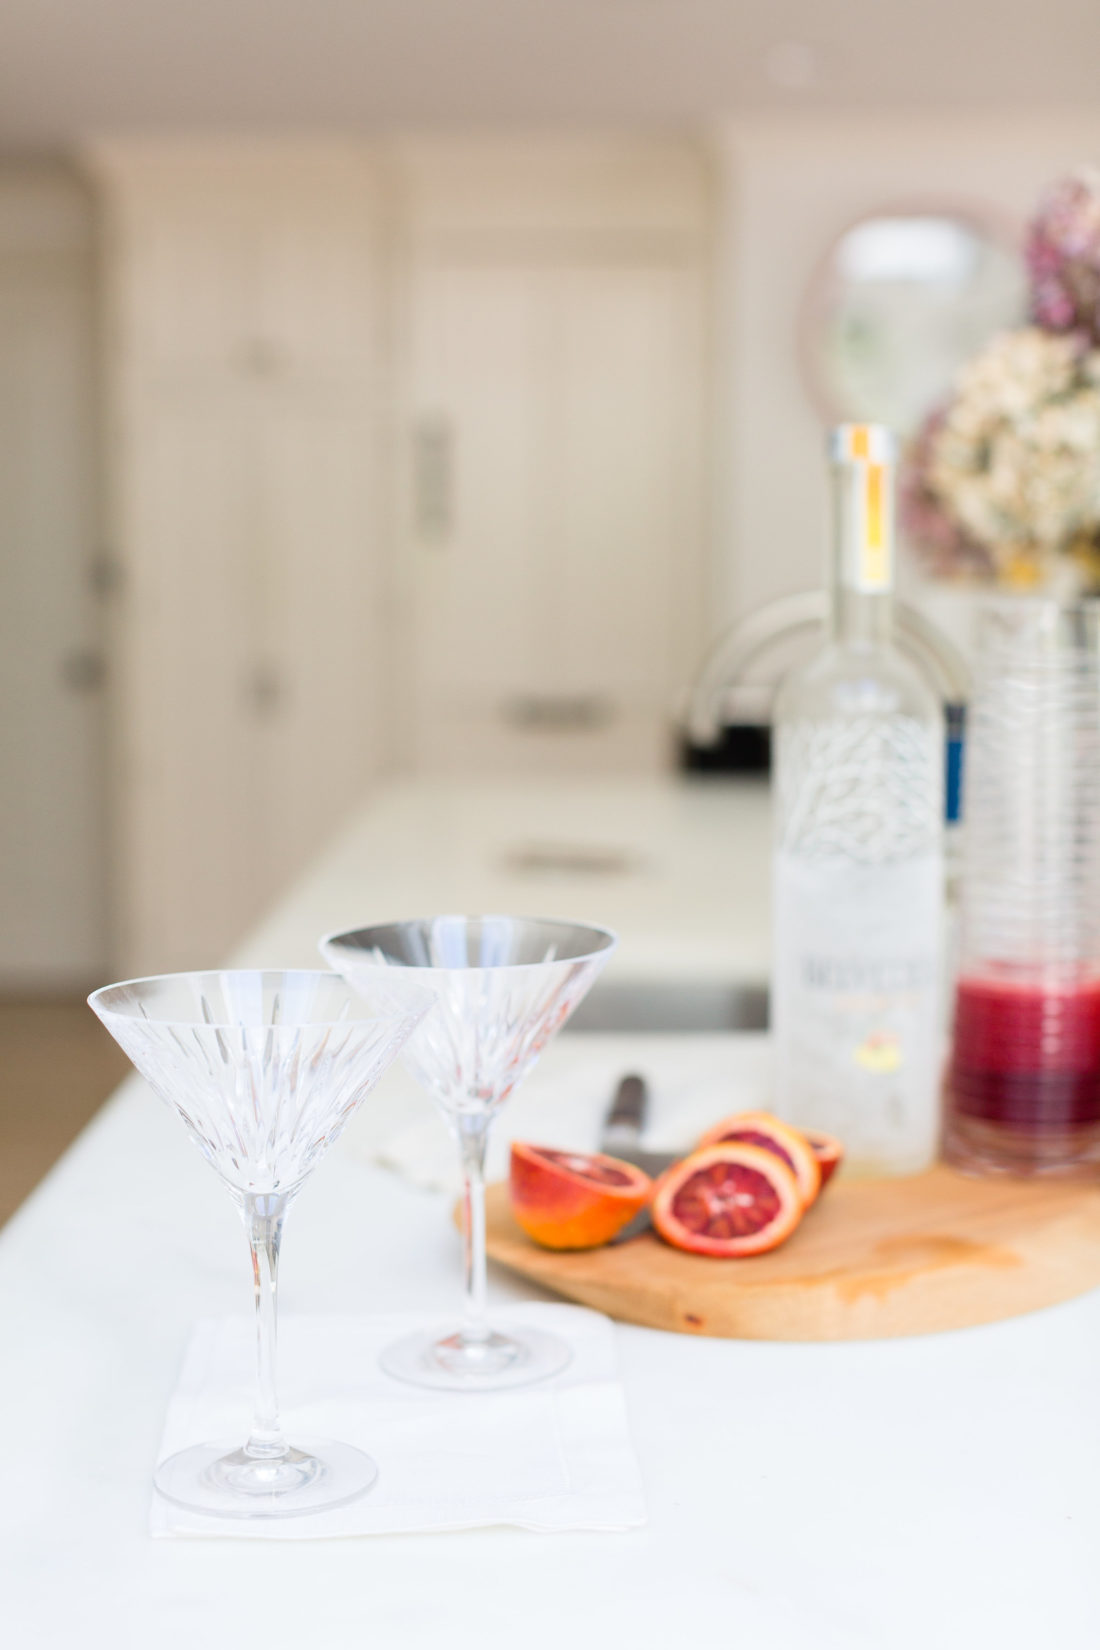 Eva Amurri Martino prepares to make blood orange and ginger martinis in the kitchen of her connecticut home